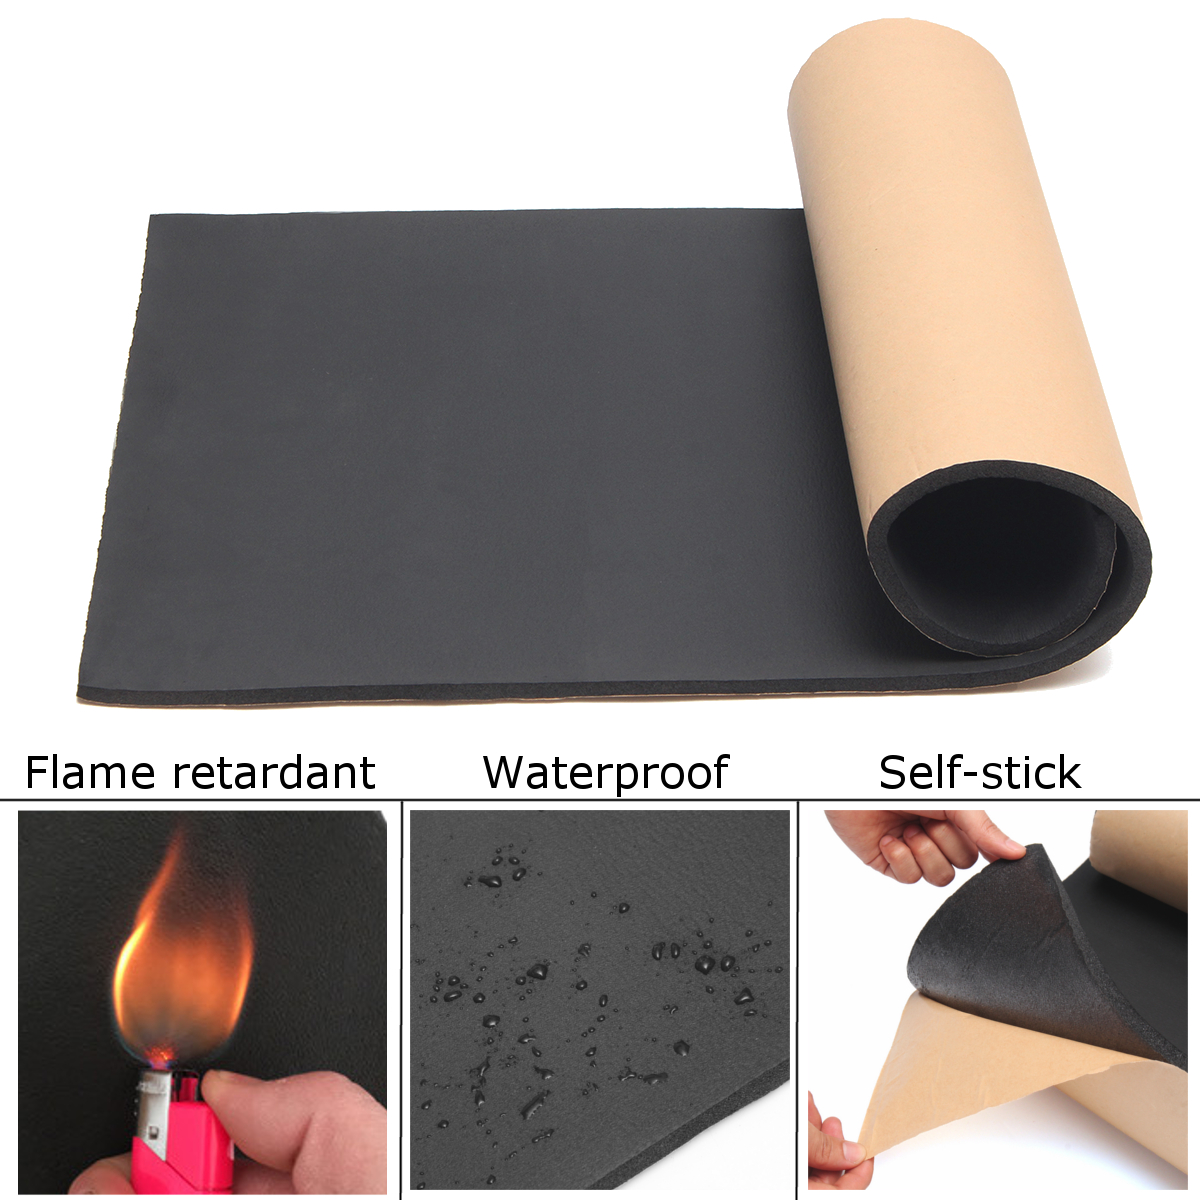 self-adhesive-closed-cell-foam-sheets-soundproof-insulation-home-car-sound-acoustic-insulation-thermal-1m-x-50cm-x-10mm-thick